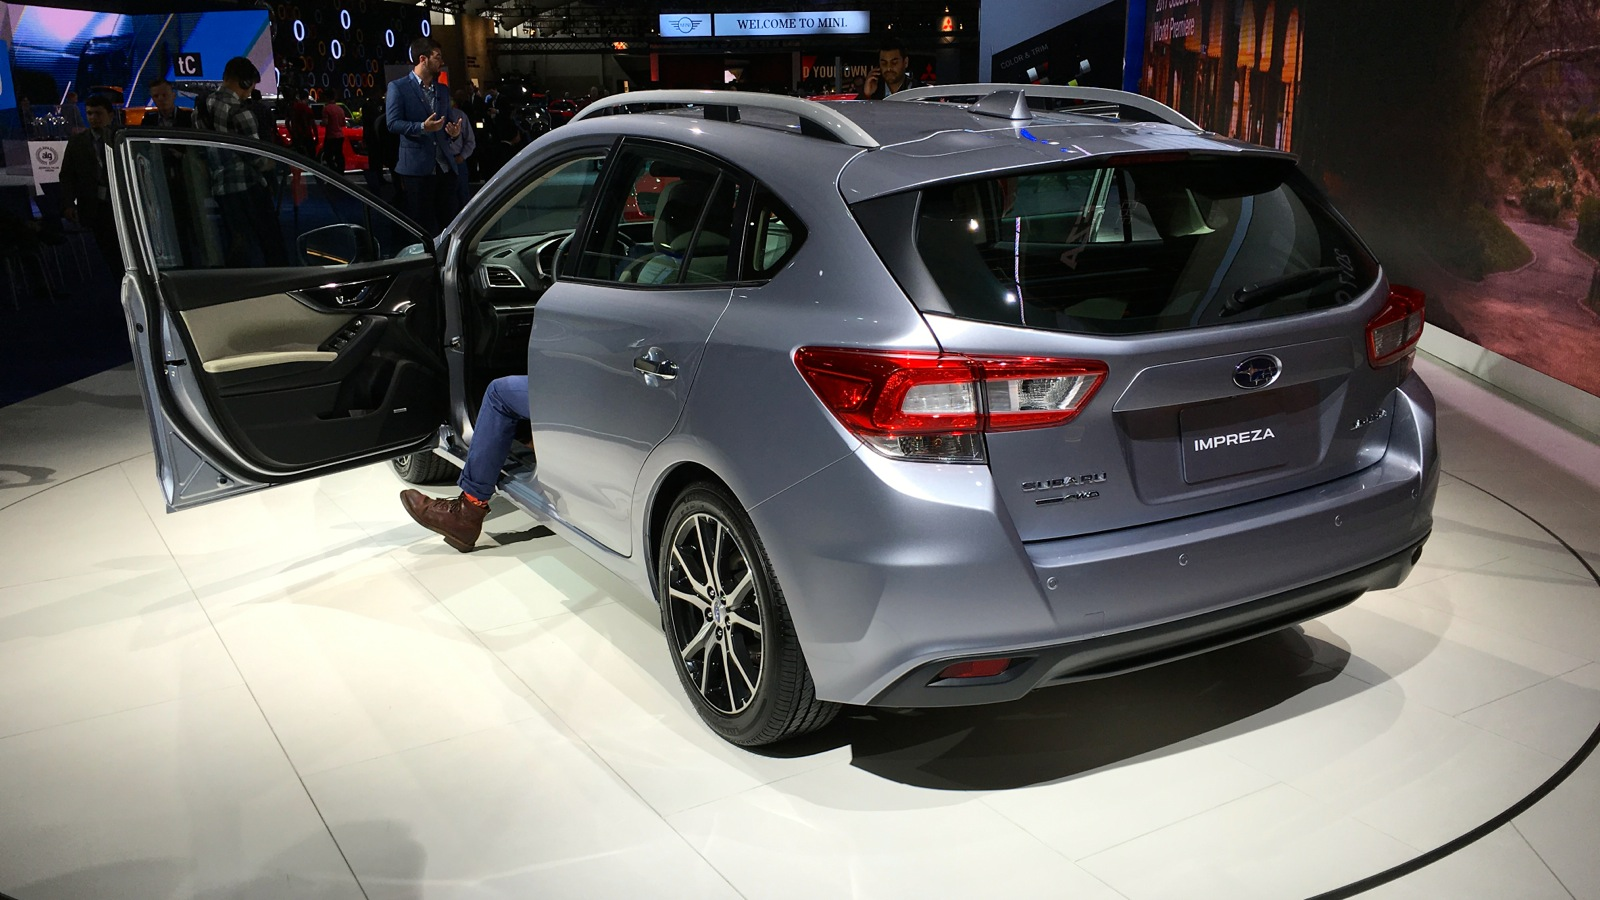 2017 subaru impreza sedan and hatch debut at new york auto show update photos 1 of 22. Black Bedroom Furniture Sets. Home Design Ideas